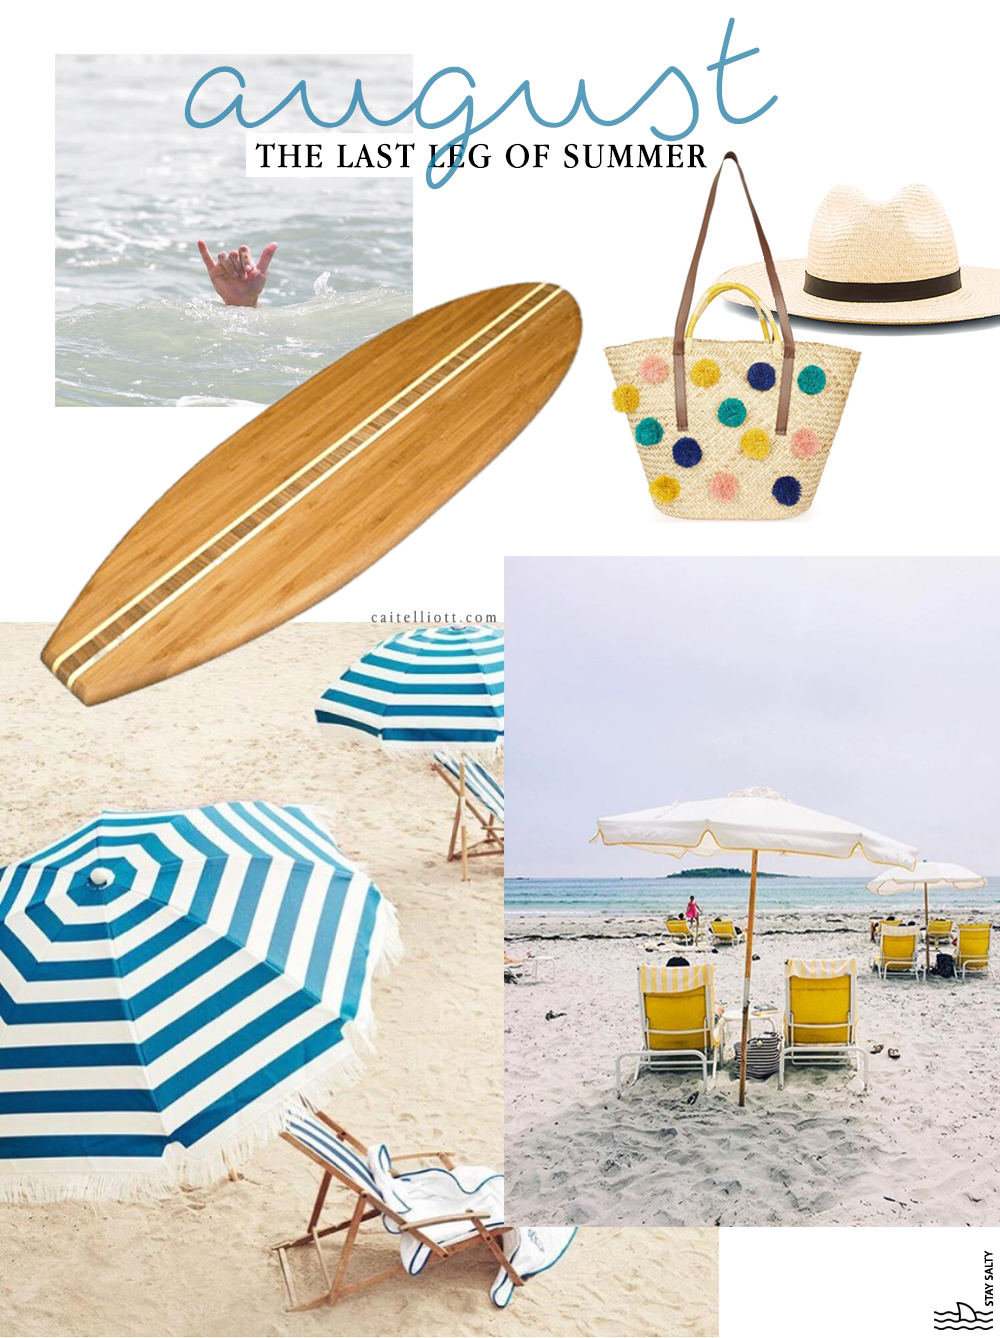 caitlin_elliott_august_mood board_summer